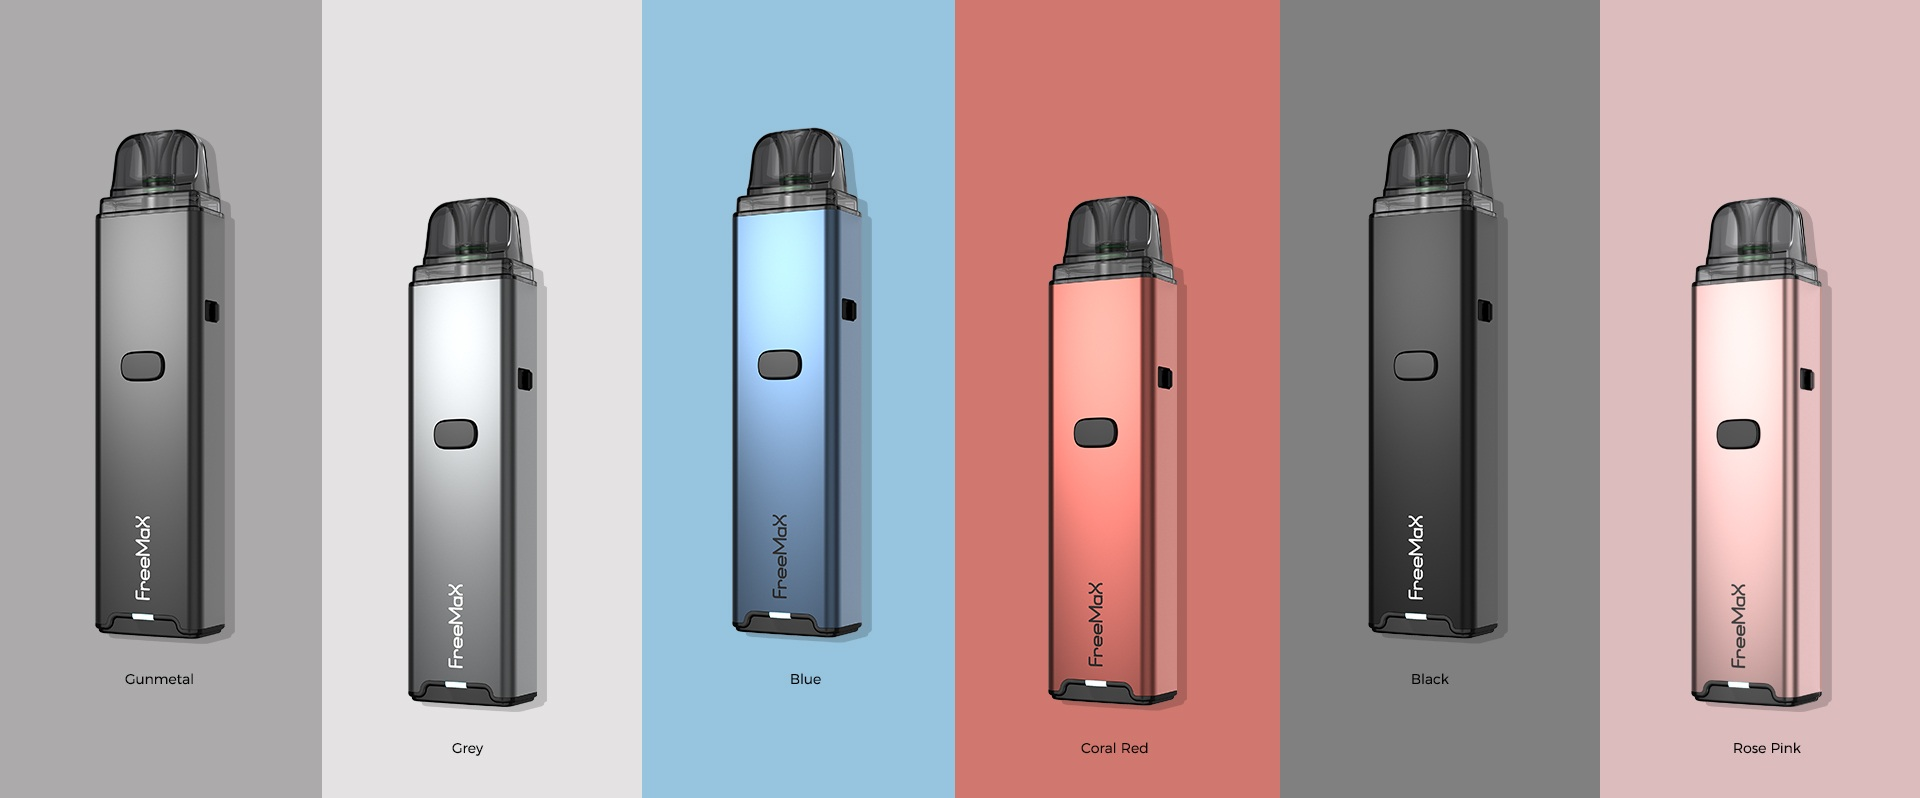 Onnix 20W Kit - Colors